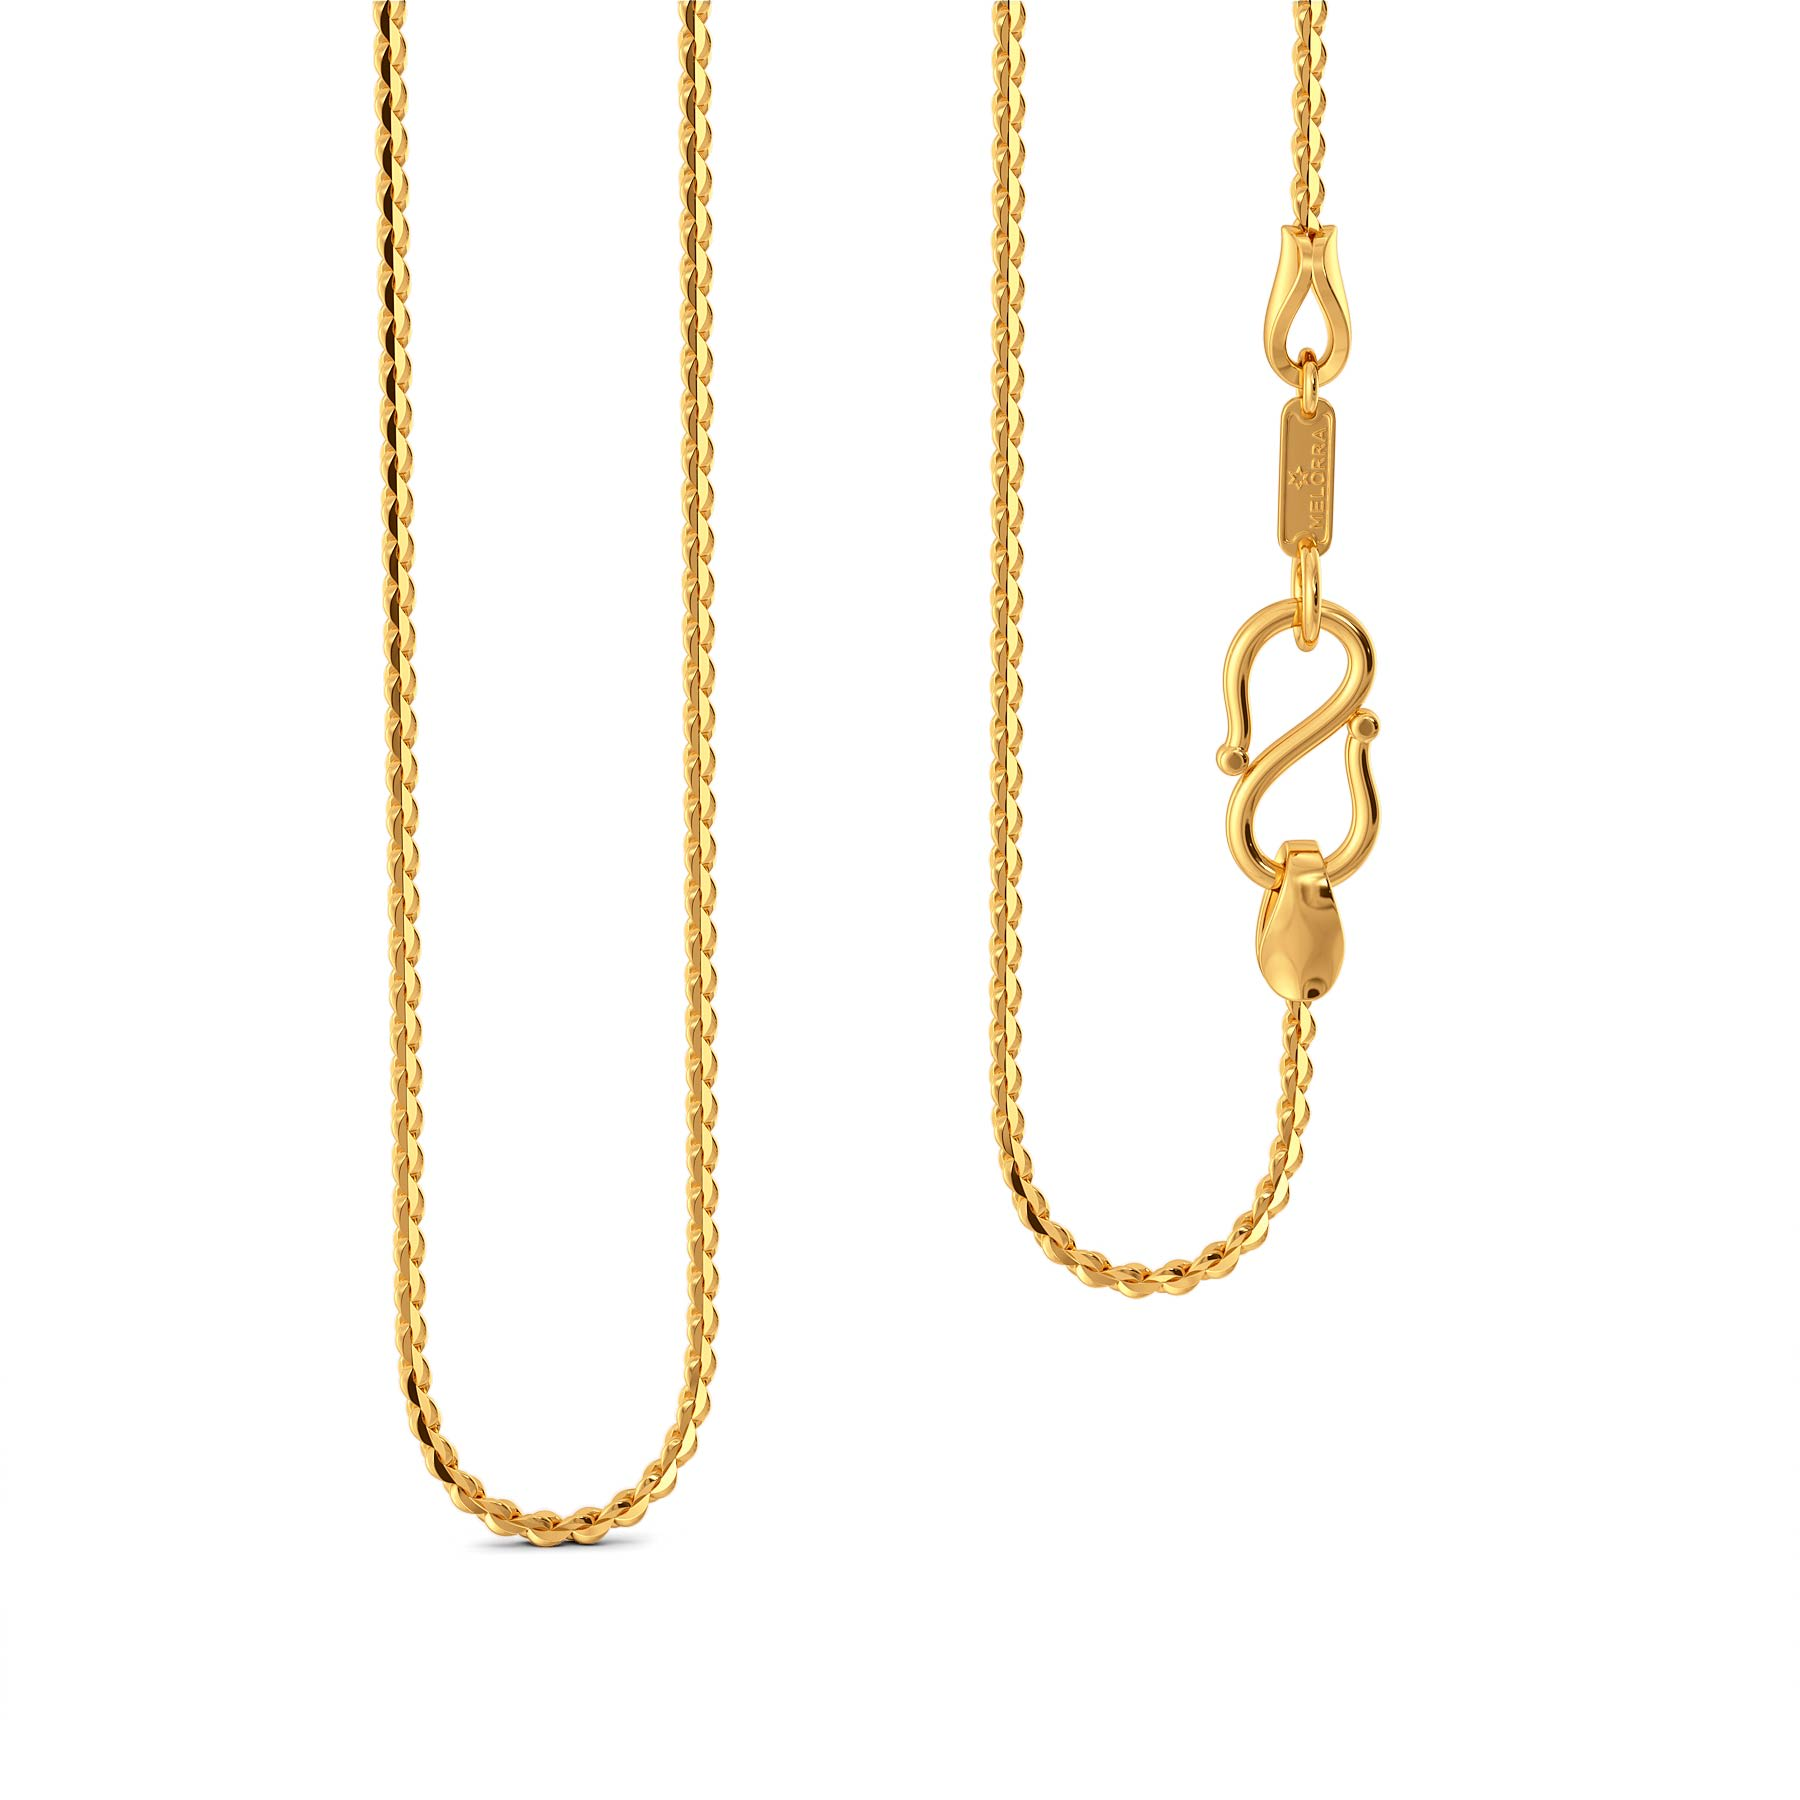 22kt S V Chain Gold Chains